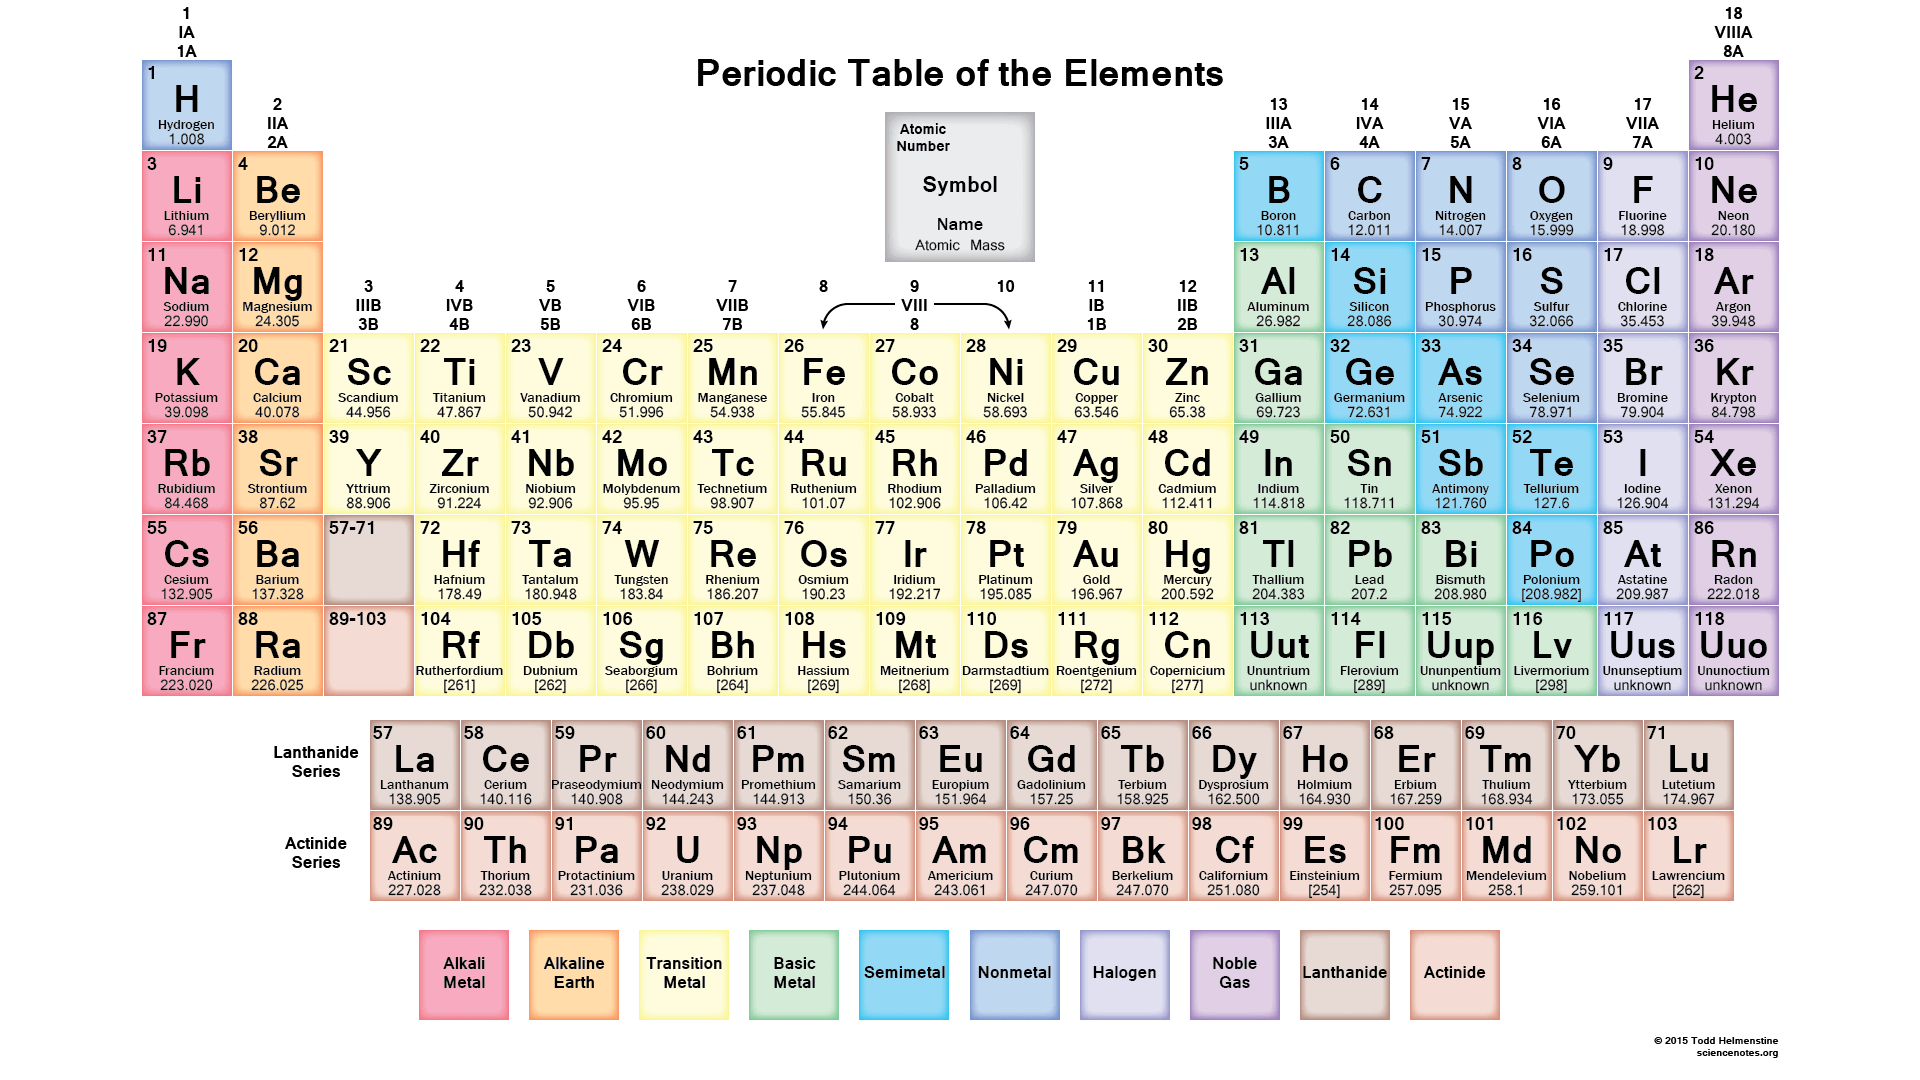 Printable periodic tables for chemistry science notes - Tungsten symbol periodic table ...